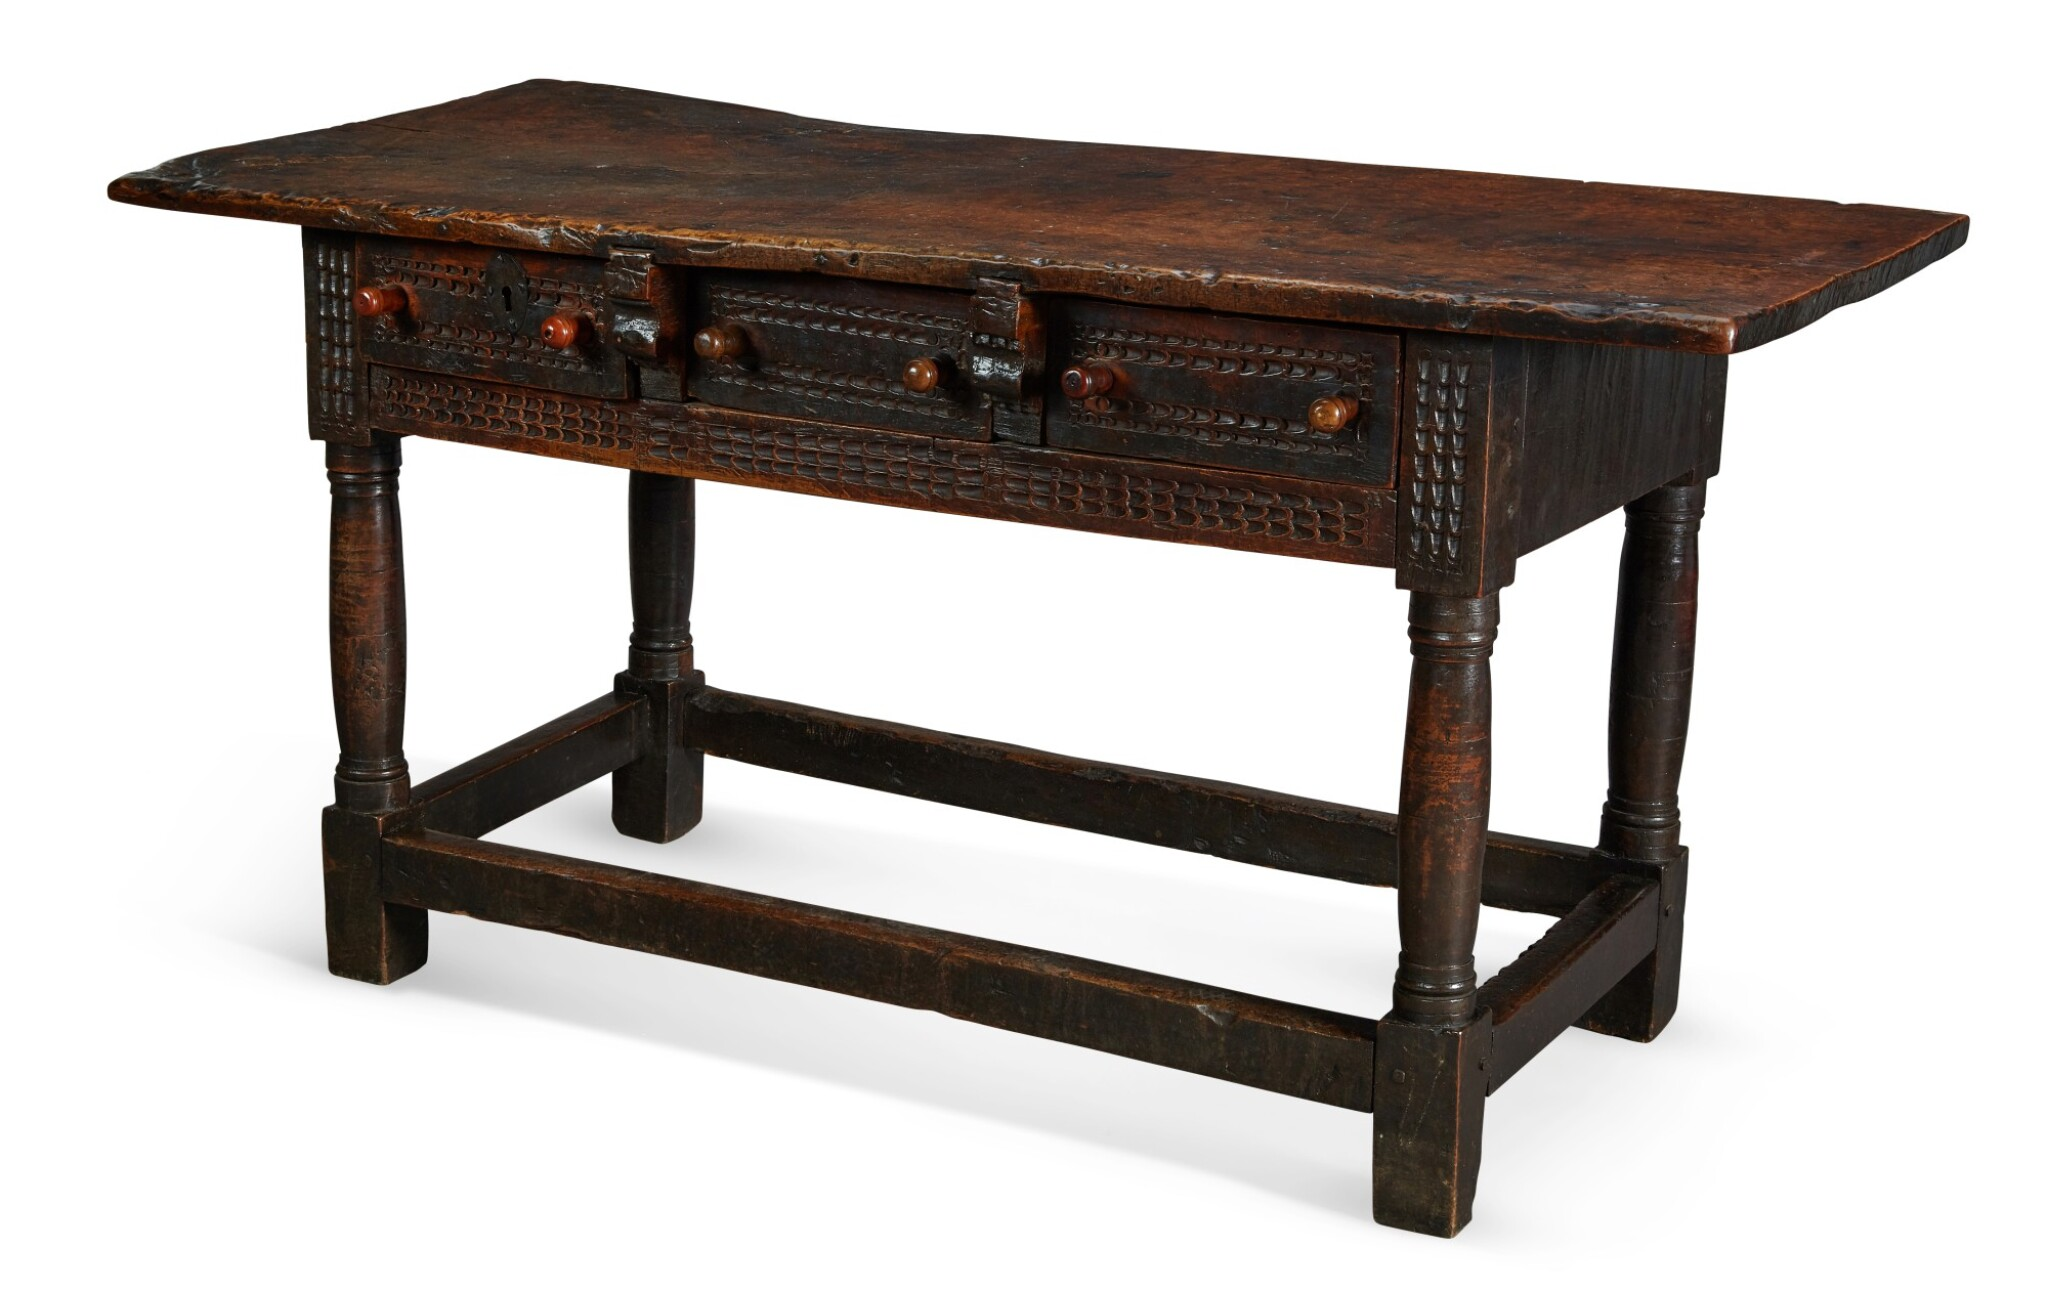 View full screen - View 1 of Lot 32. A SPANISH CARVED WALNUT SIDE TABLE, 17th CENTURY.